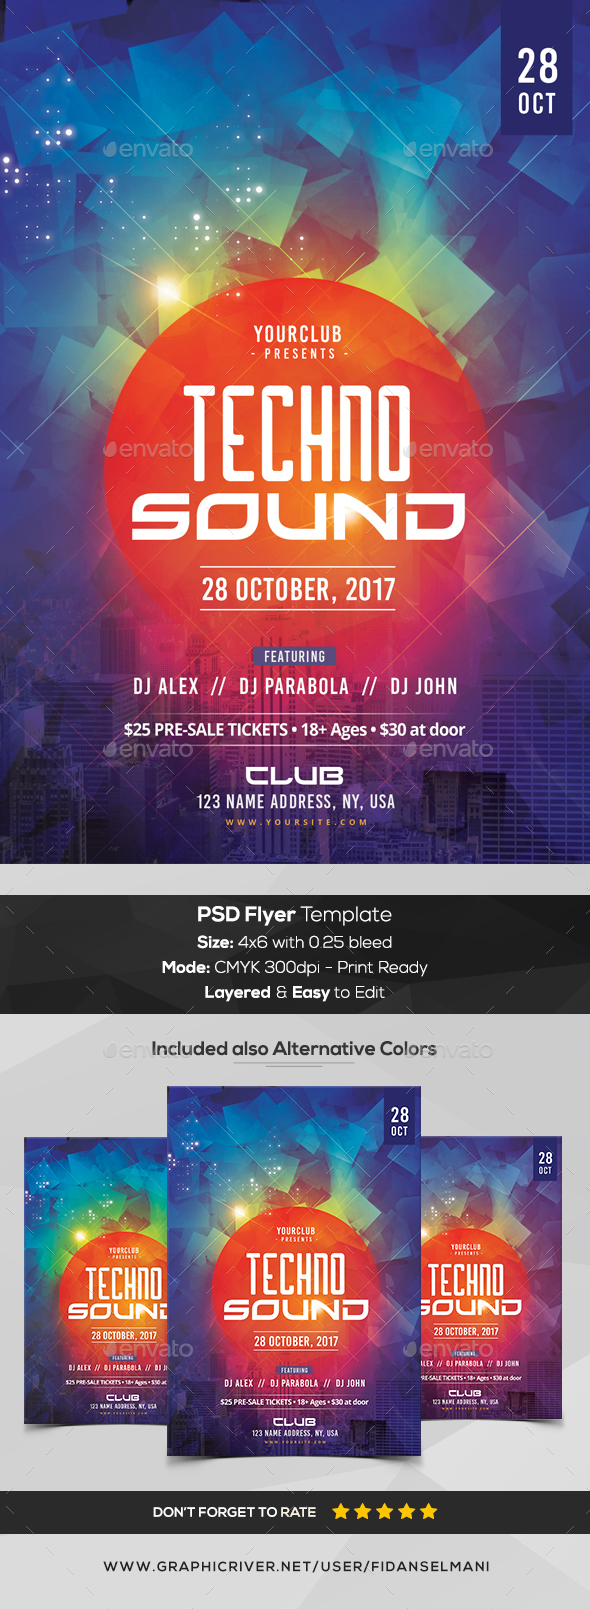 Techno Sound - PSD Flyer Template - Events Flyers